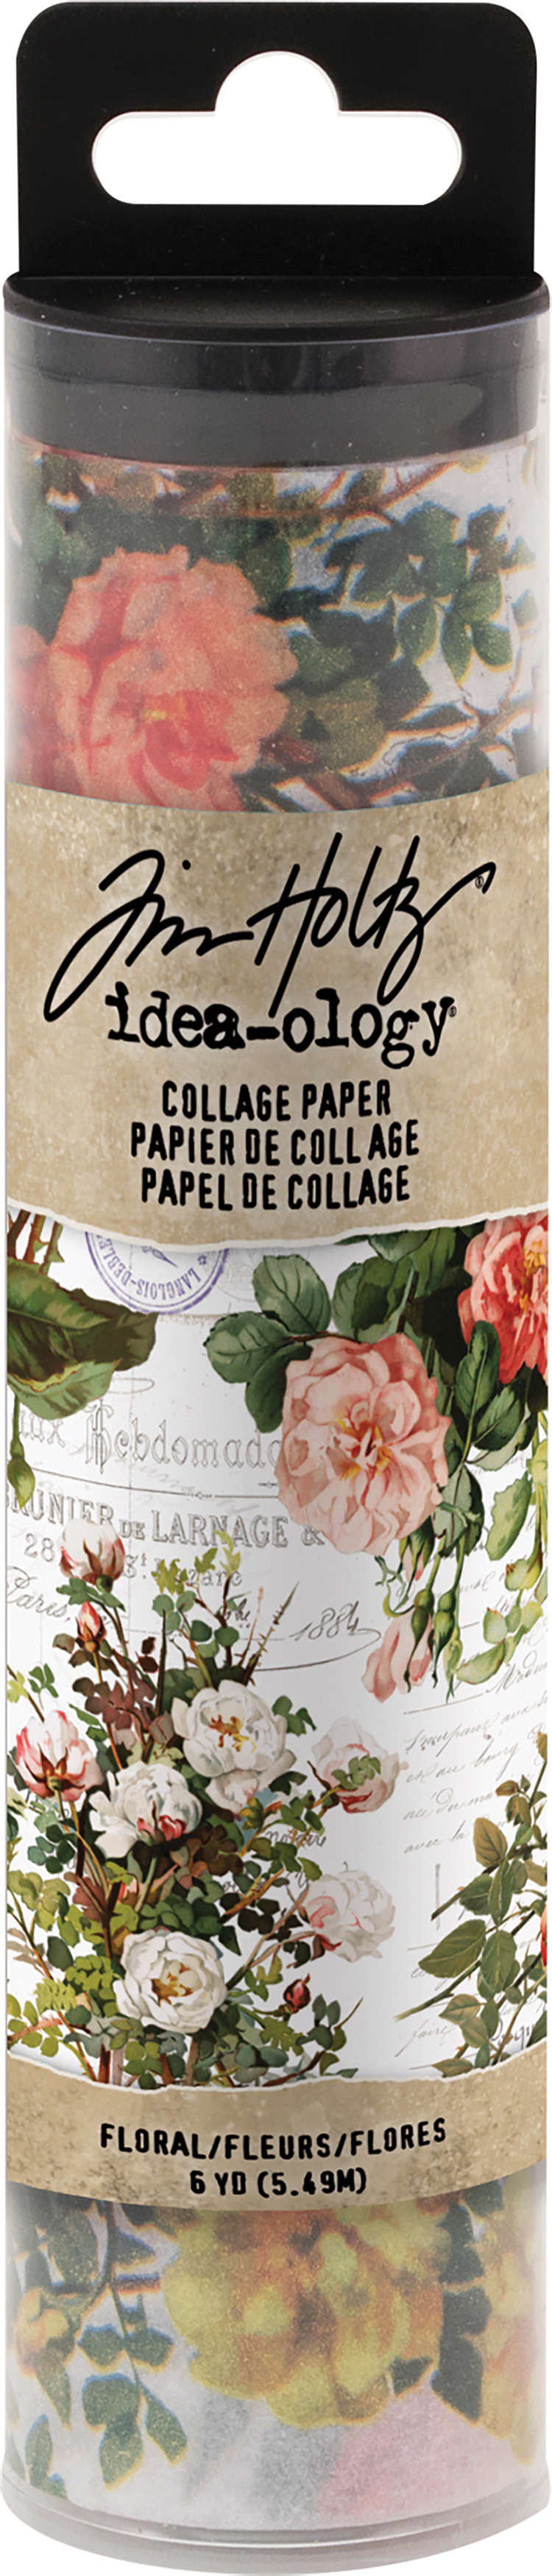 Idea-Ology Collage Paper 6X6yds-Floral